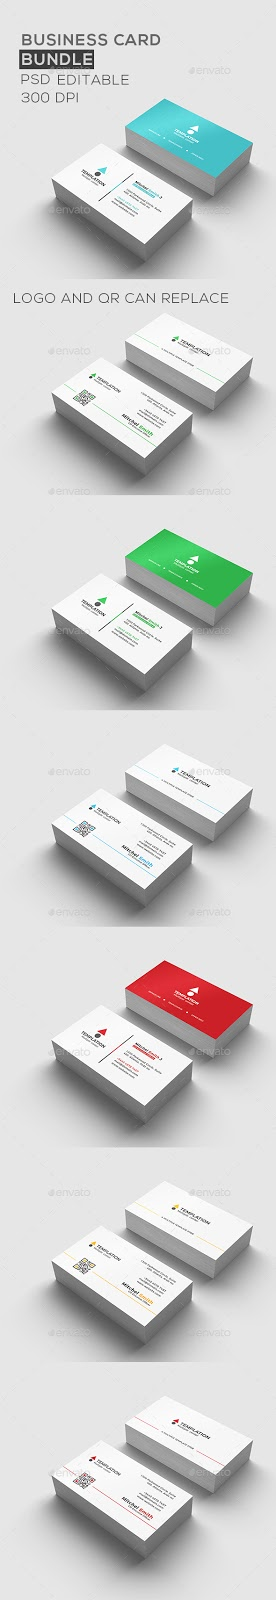 100 free business cards psd css author graphic best advise a simple business card which is recommended for both personal and company use the card has layered psd files and its print ready colourmoves